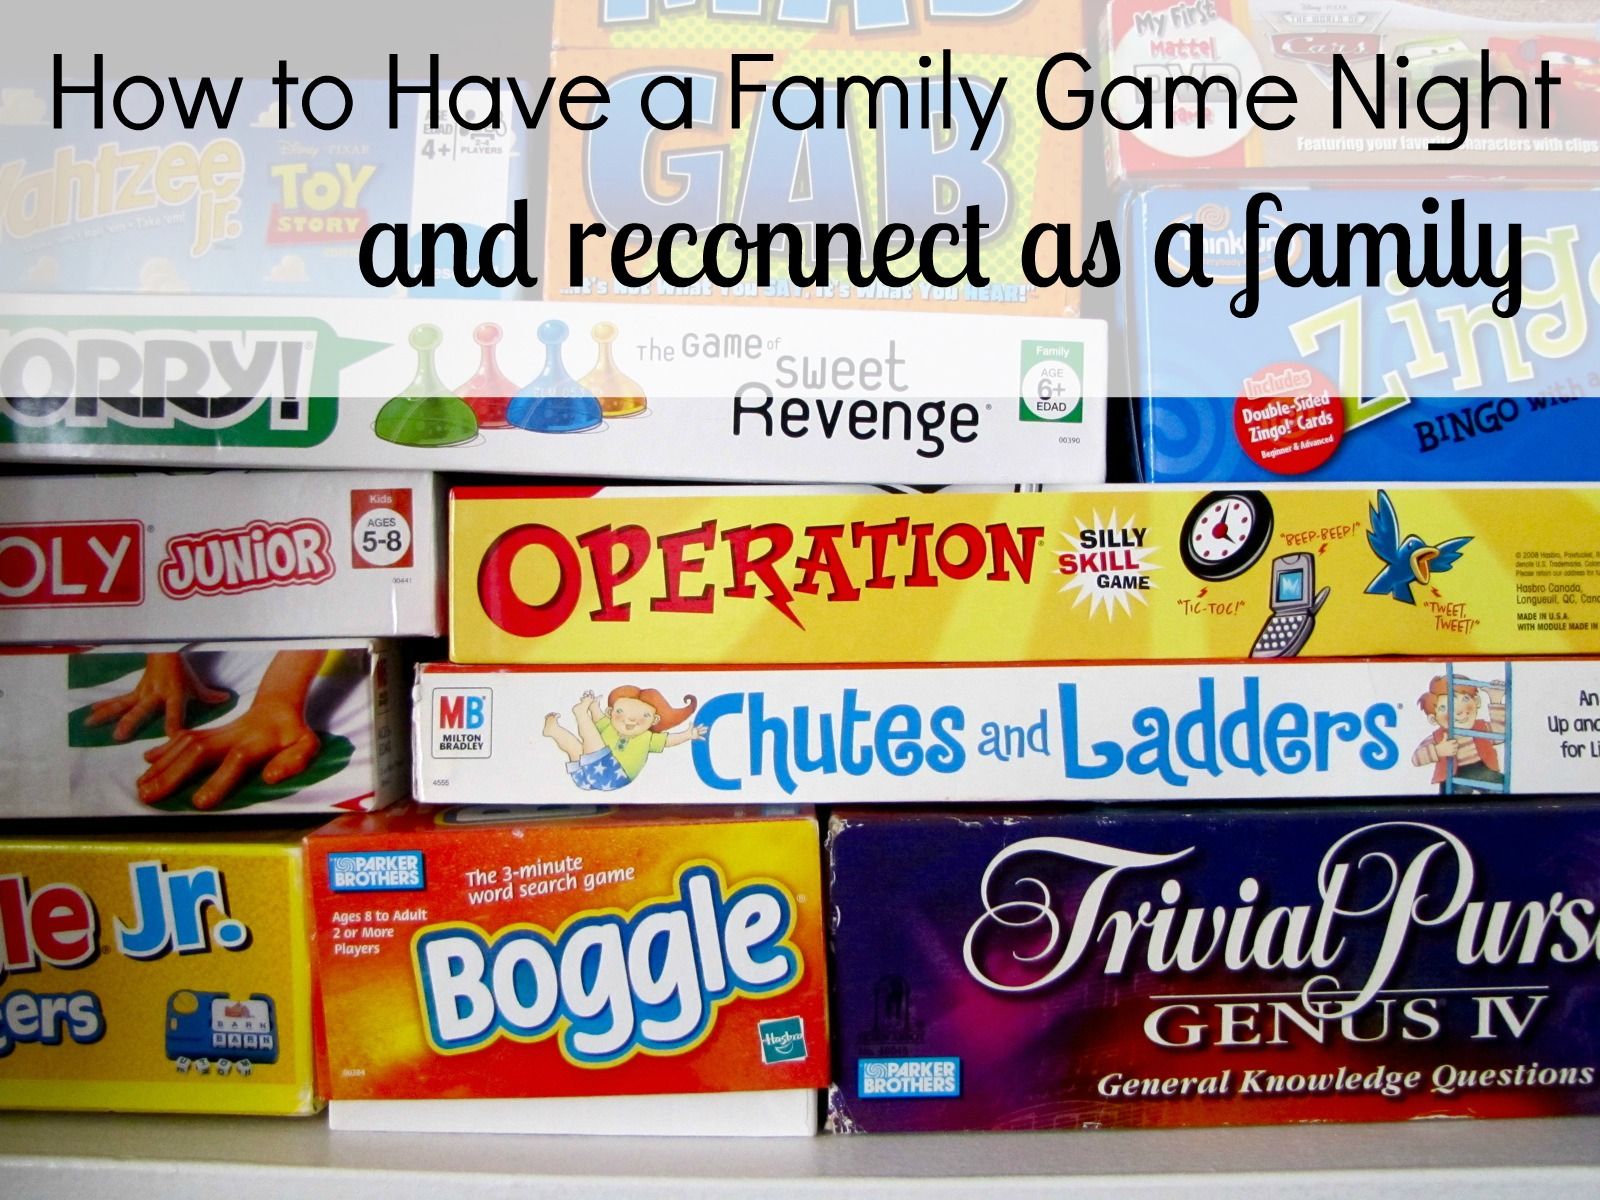 How to Plan a Family Game Night For Your Family (plus Giveaway)